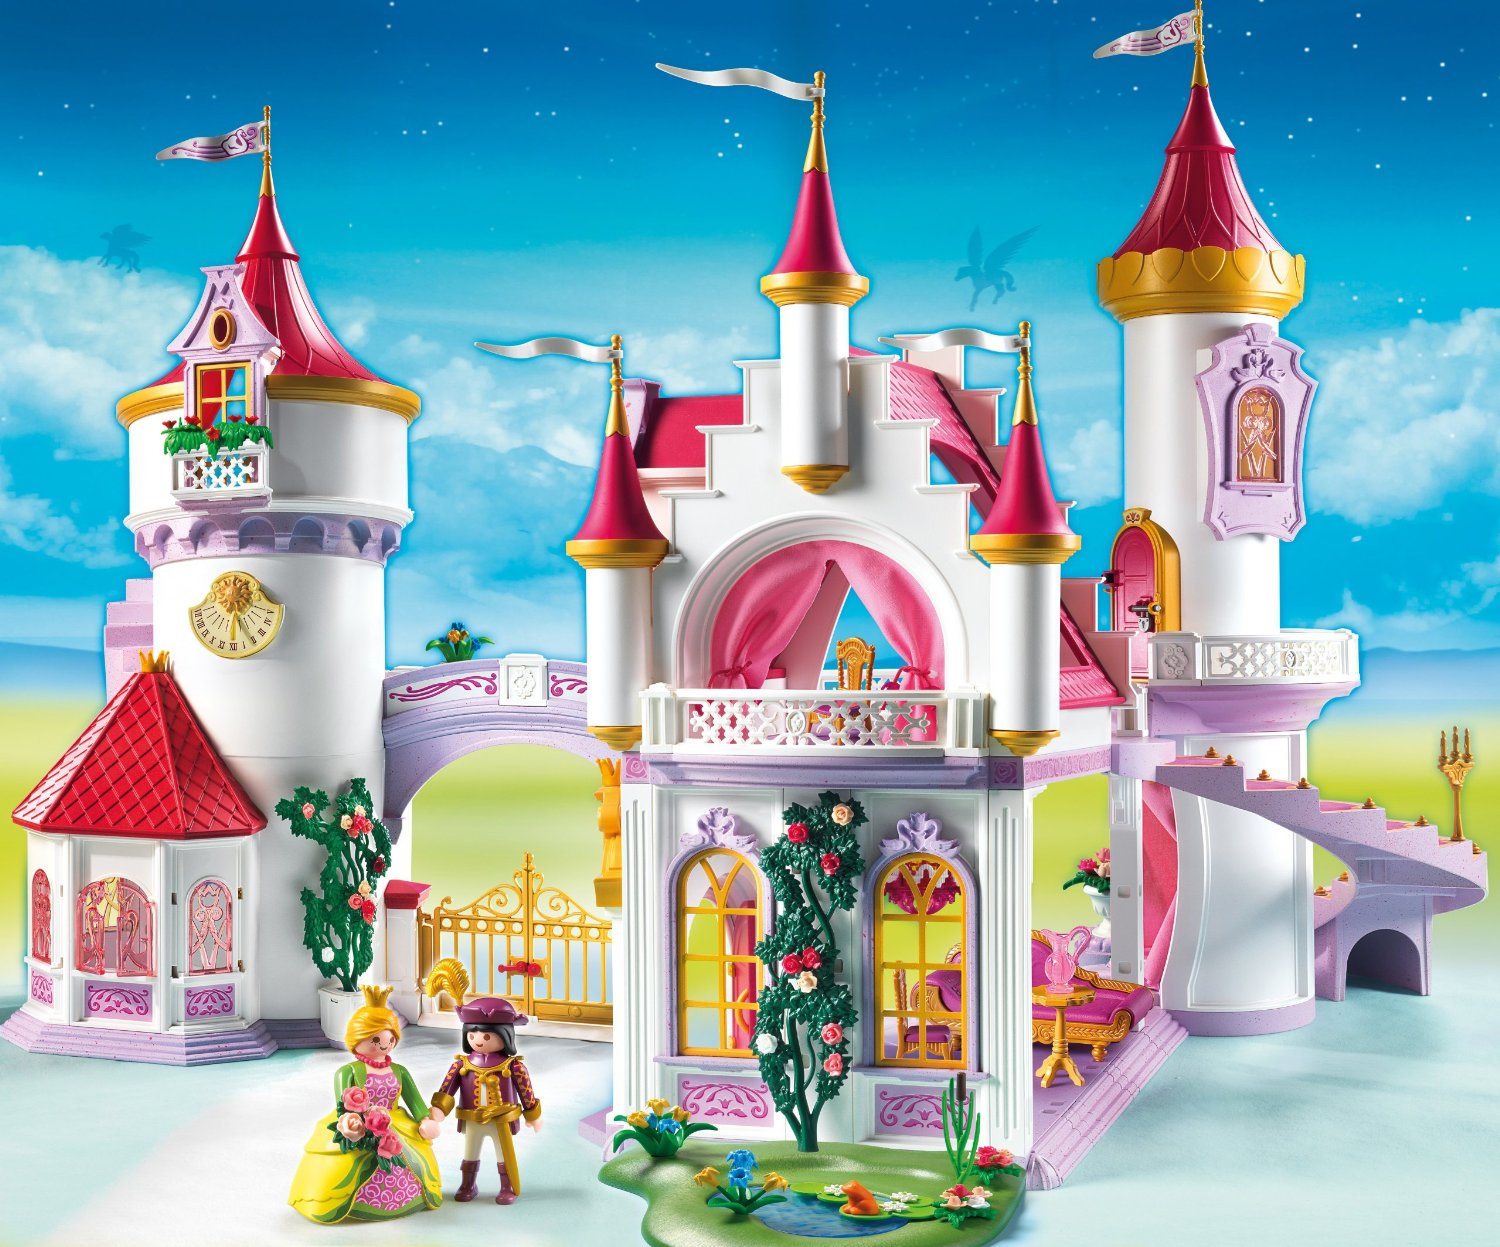 Palais de princesse 5142 playmobil ch teau fort playmobil for Image chateau princesse